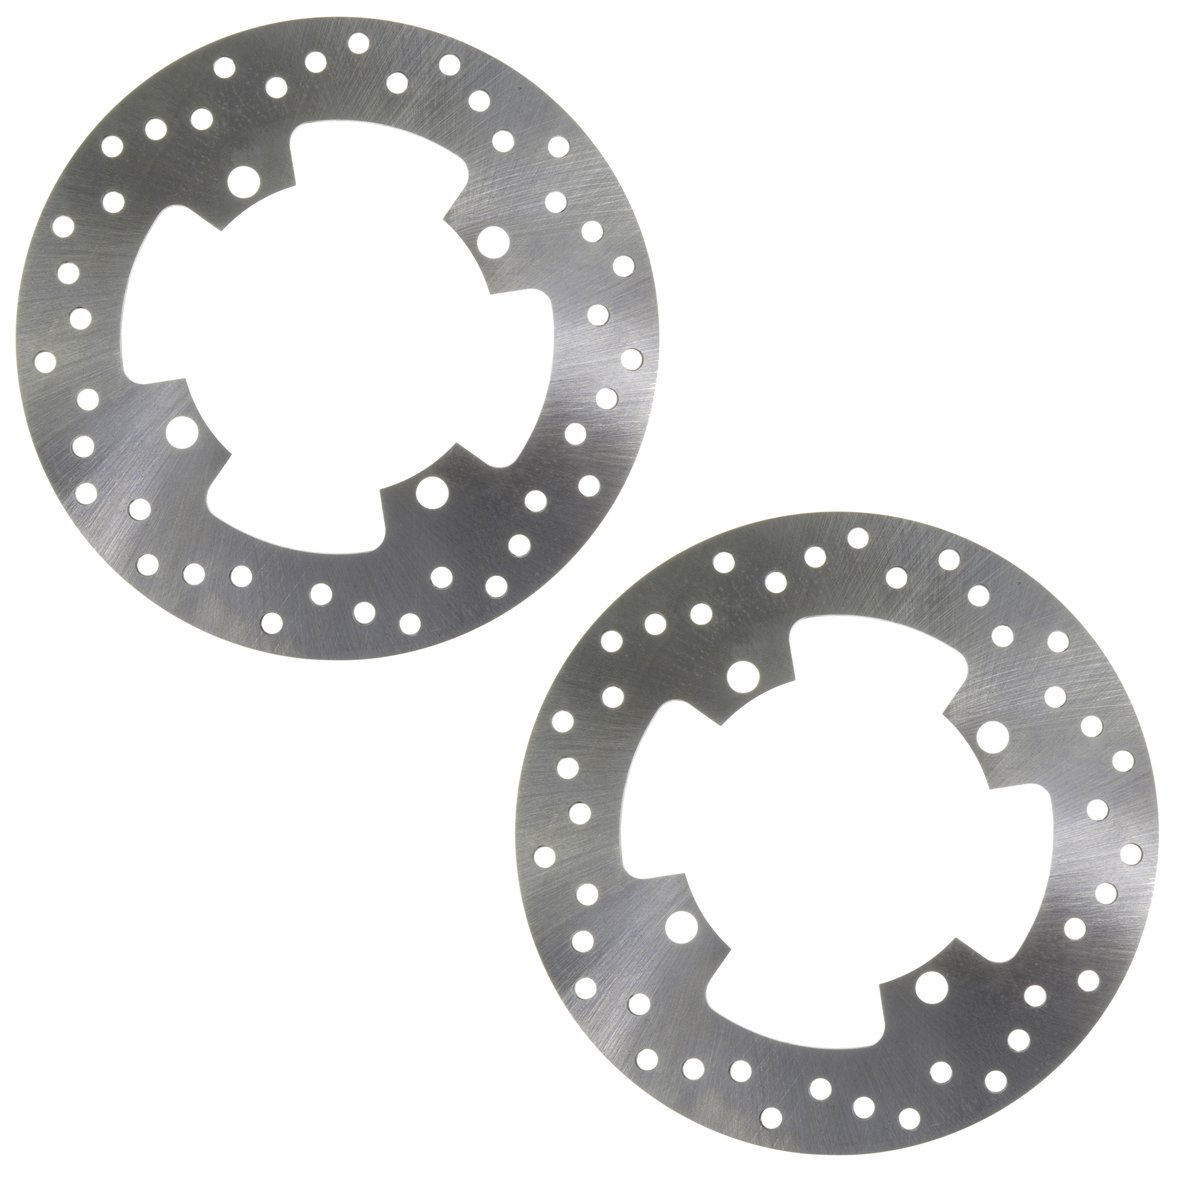 Factory Spec, FS-2086, 2 Front Disc Brake Rotors 2002-2008 Yamaha Grizzly 660 4x4 YFM660F